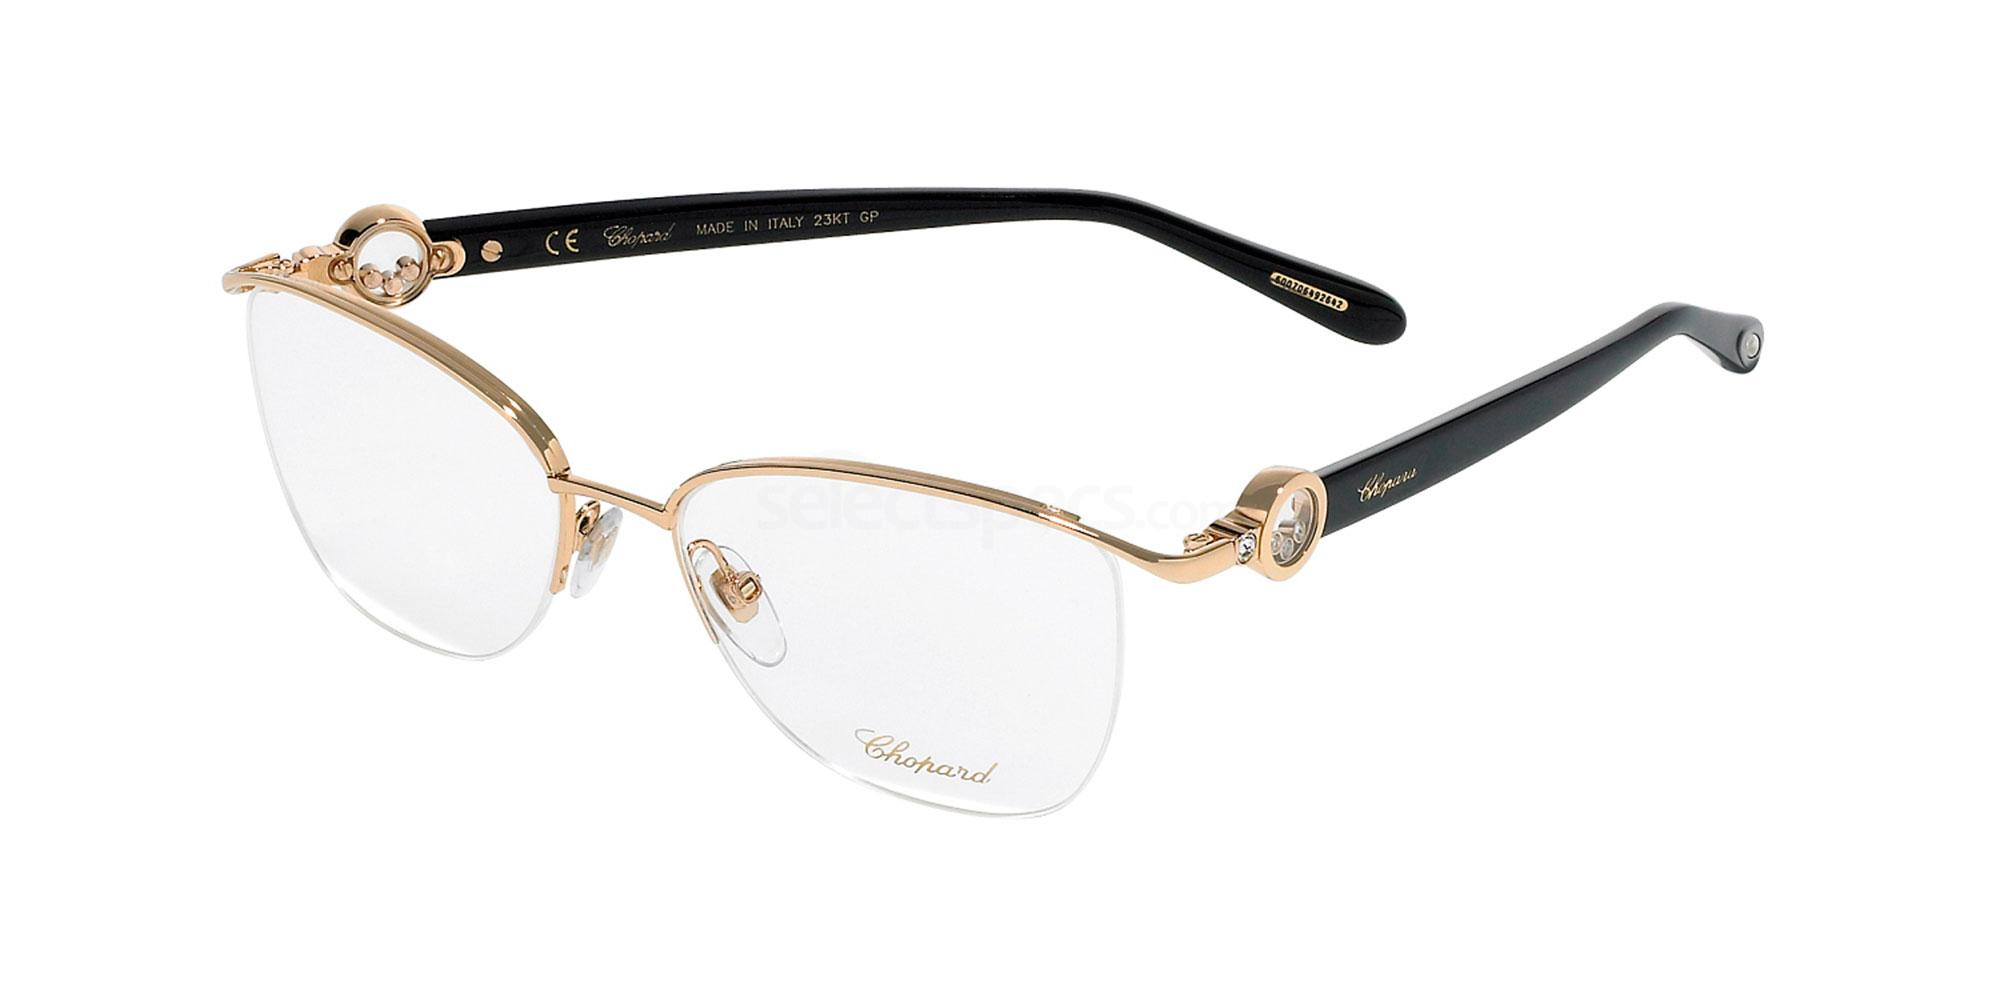 0300 VCHC54S Glasses, Chopard